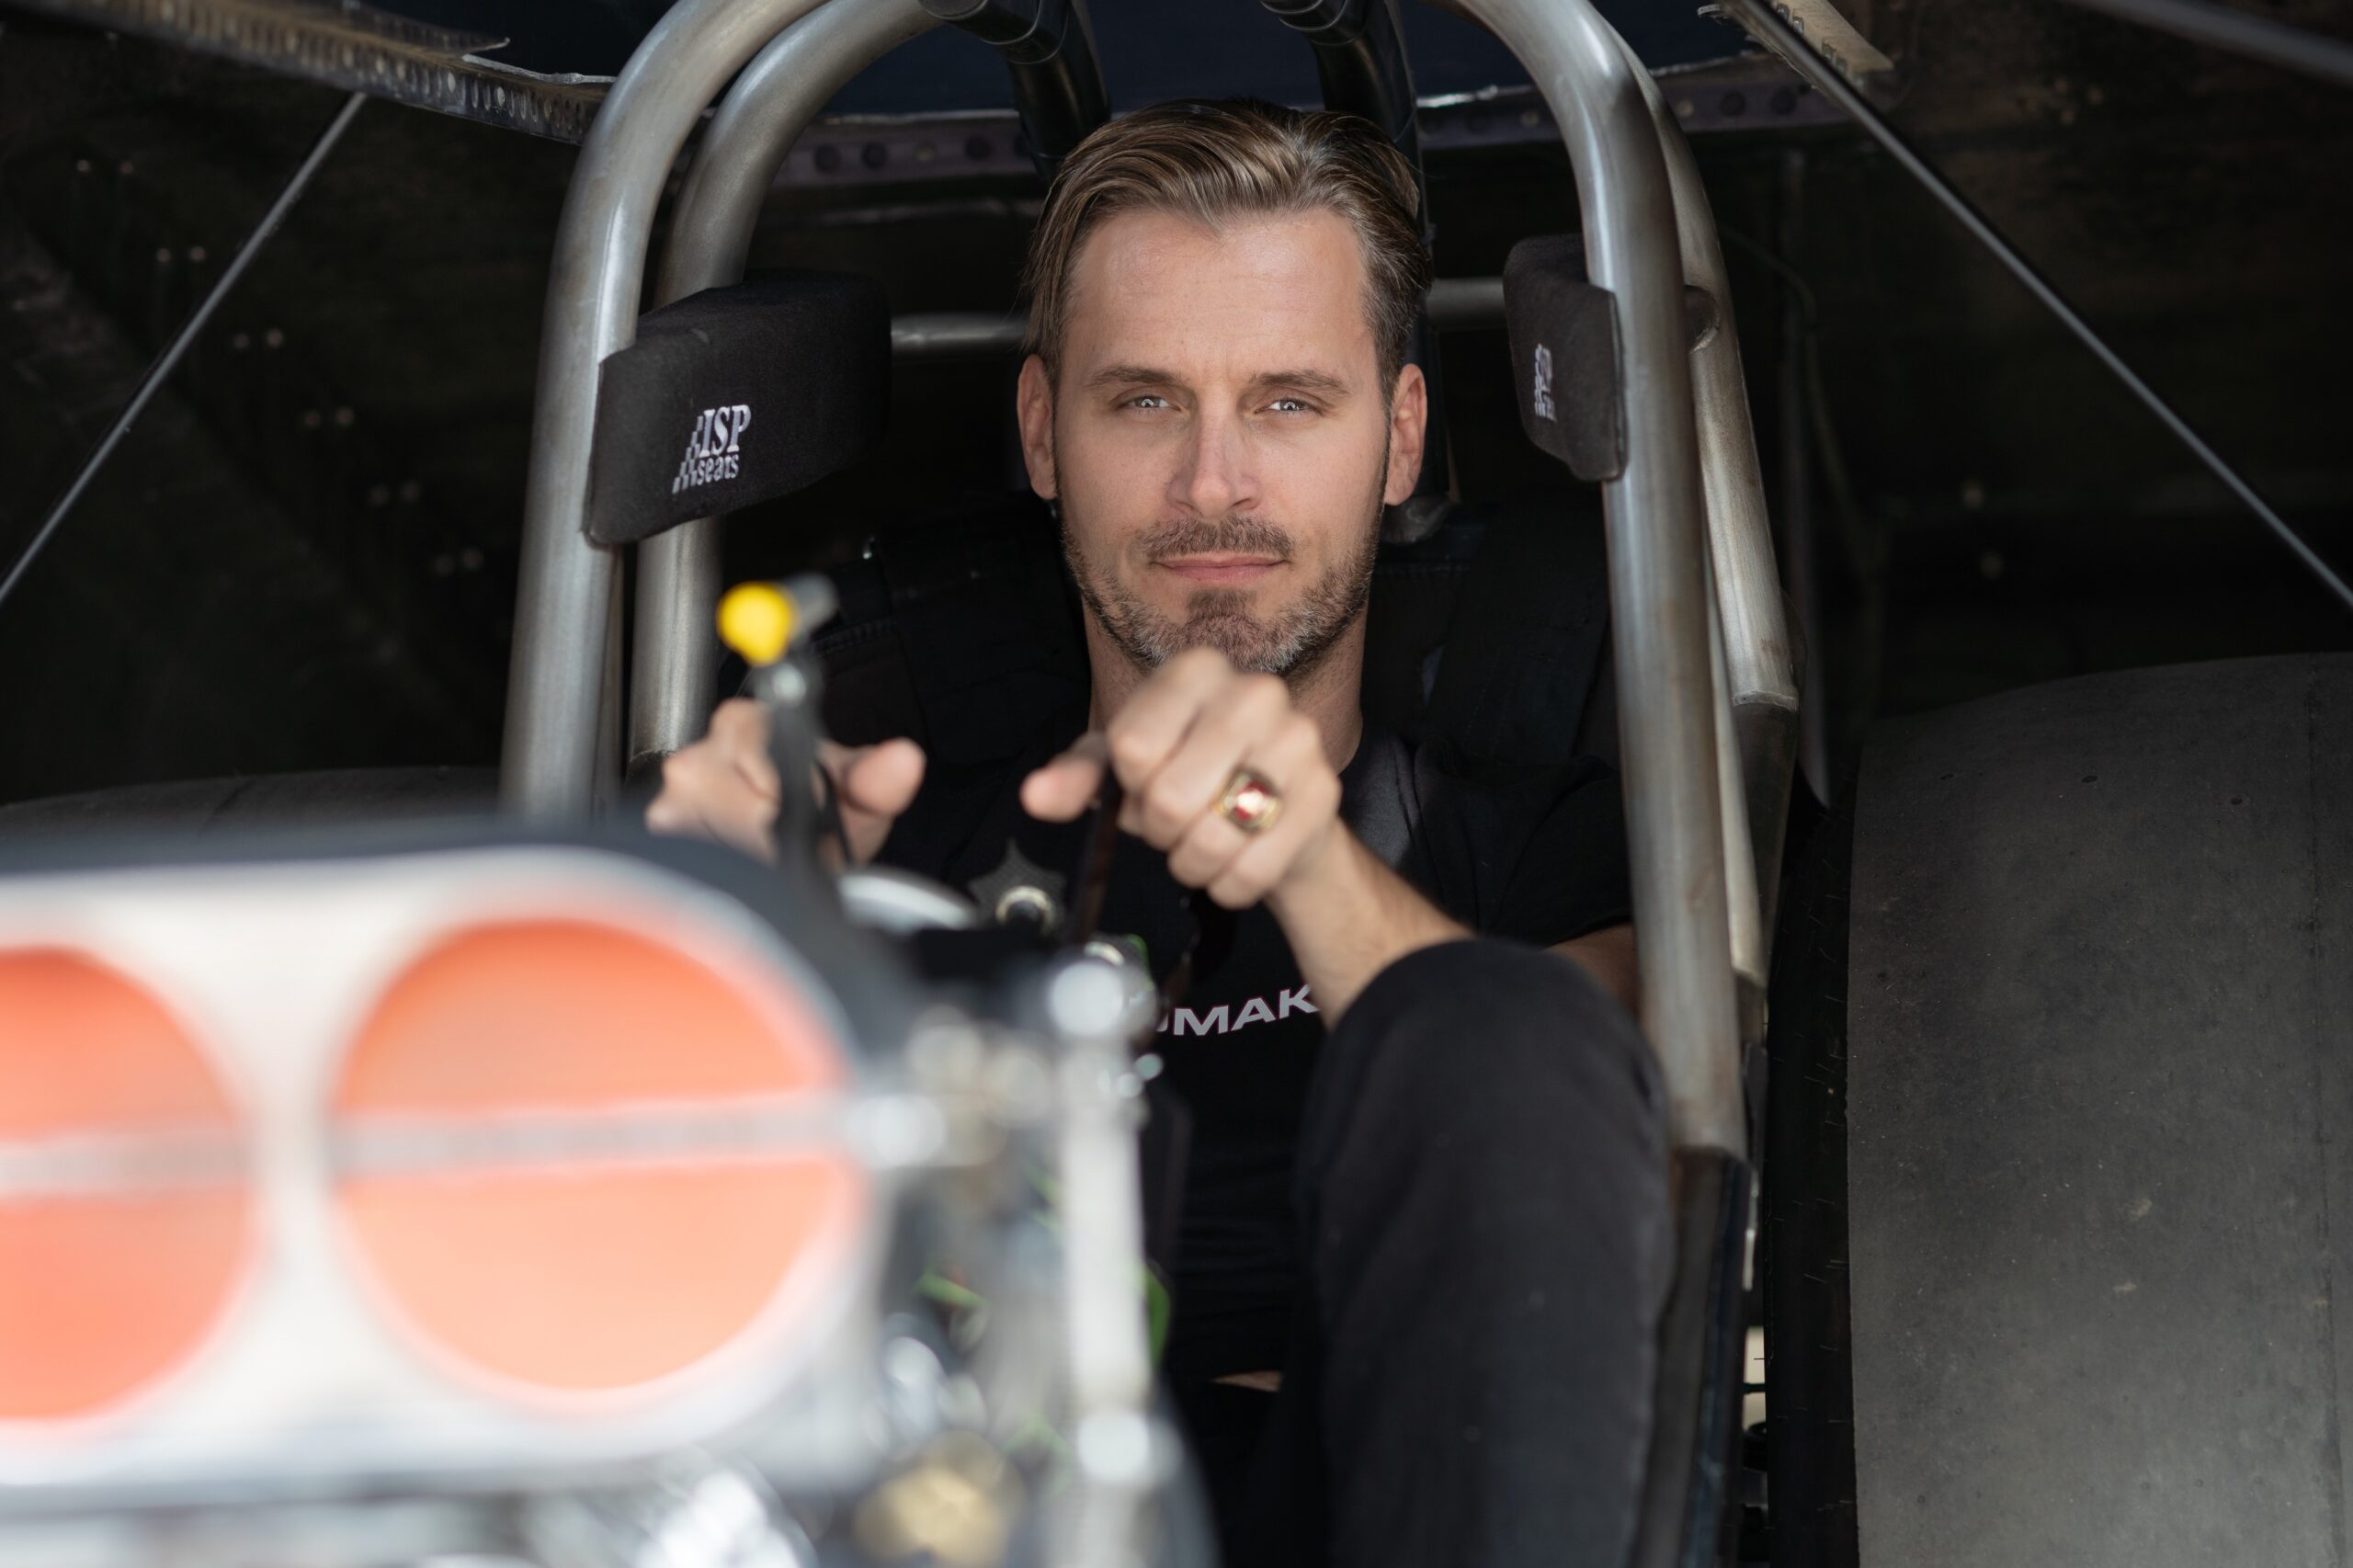 This gay man is trying to break into a different kind of drag racing